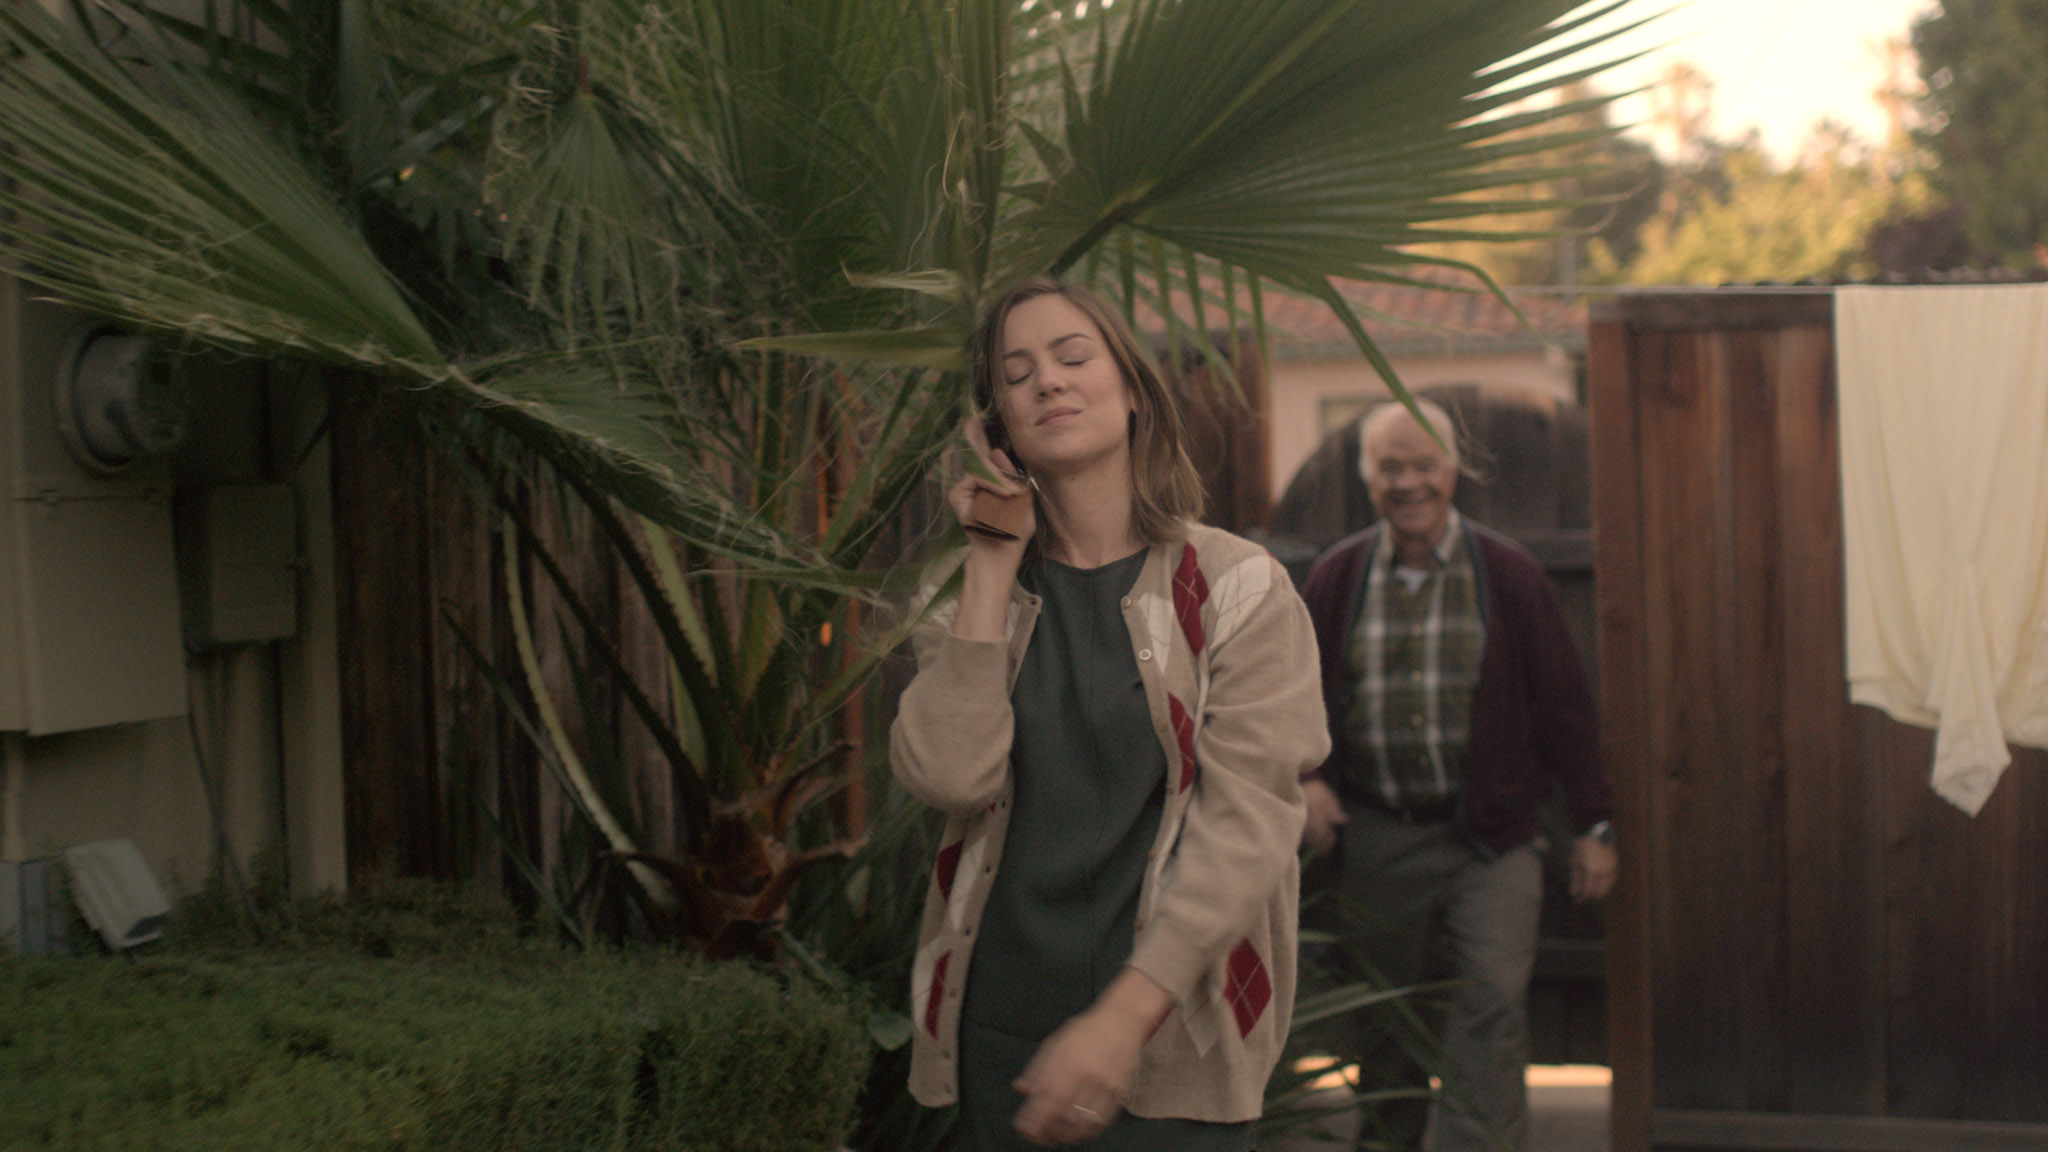 Alice & Joel arrive home. Youth, a short film coming in 2016. Starring Jessica Stroup and George Maguire, directed by Brett Marty. A sci-fi film about growing old in a world of perpetual youth.